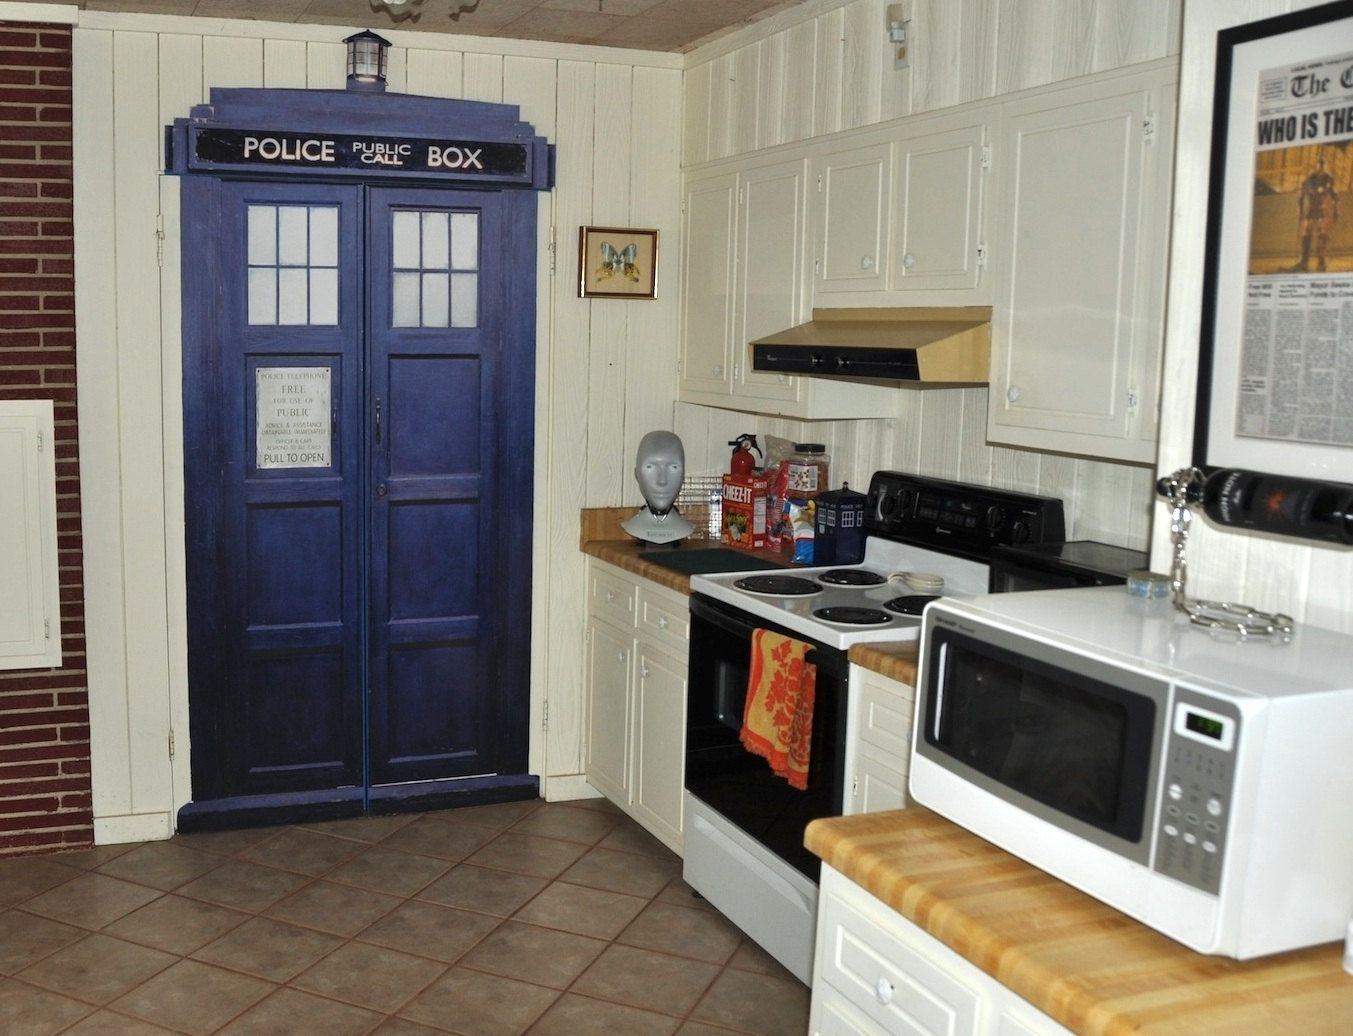 Wall Stickers How To Apply Hand Made Life Size Tardis Wall Decal By Wilson Graphics